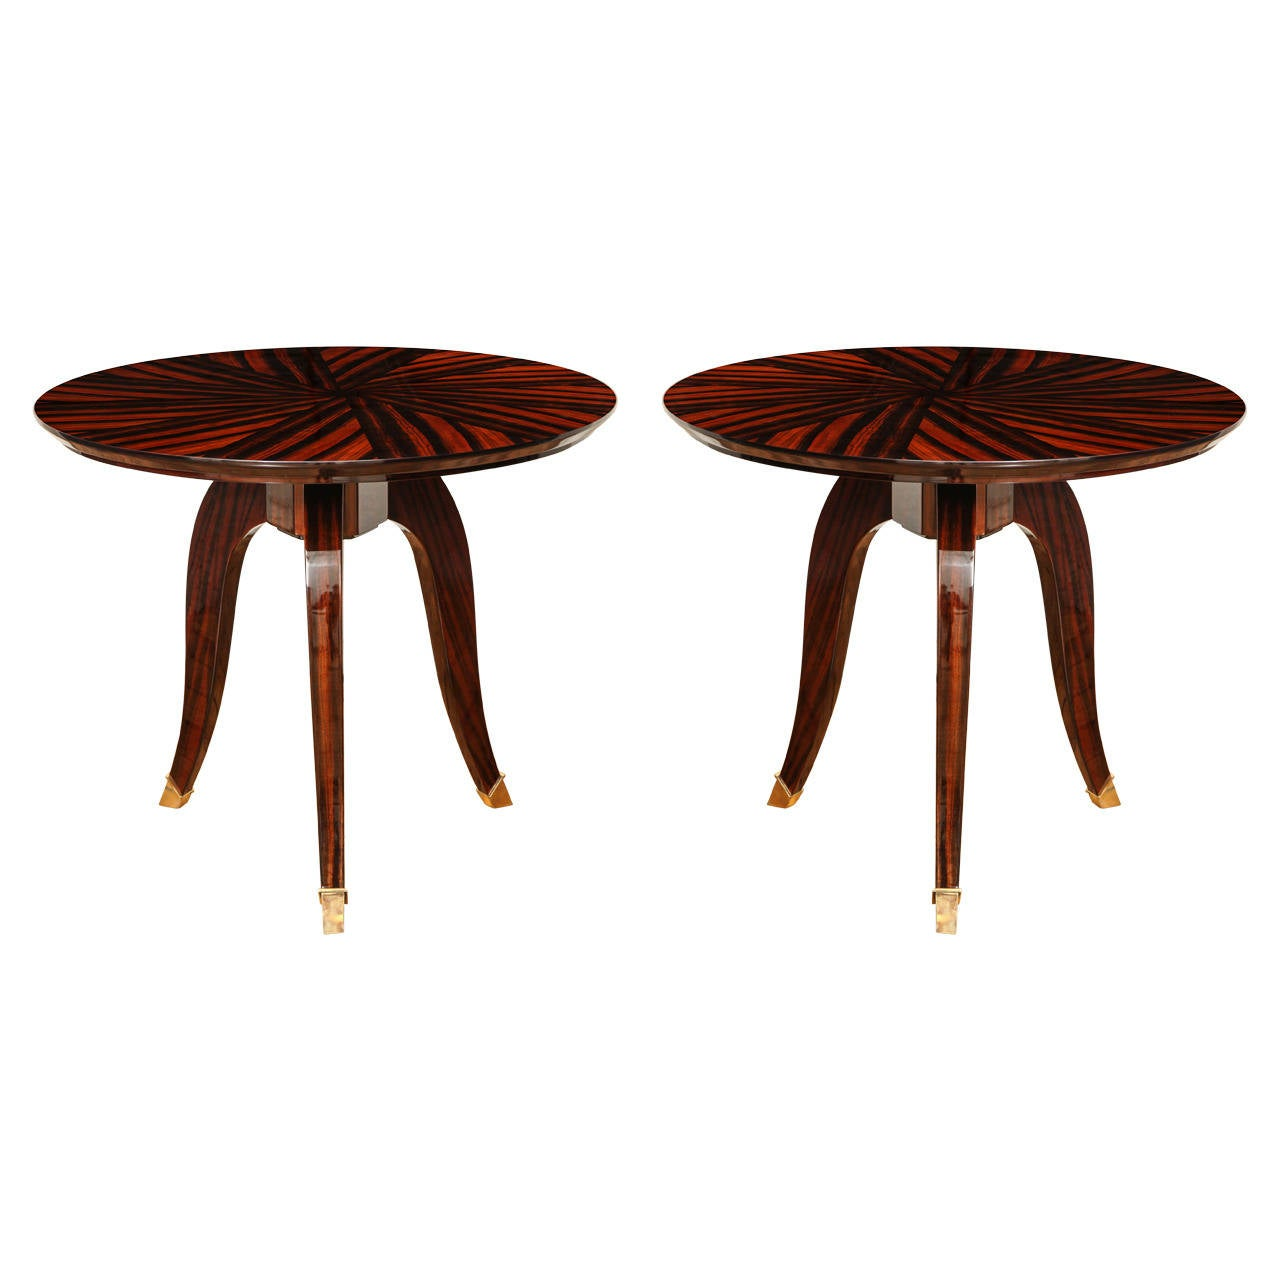 art deco gueridon or side table priced each. Black Bedroom Furniture Sets. Home Design Ideas